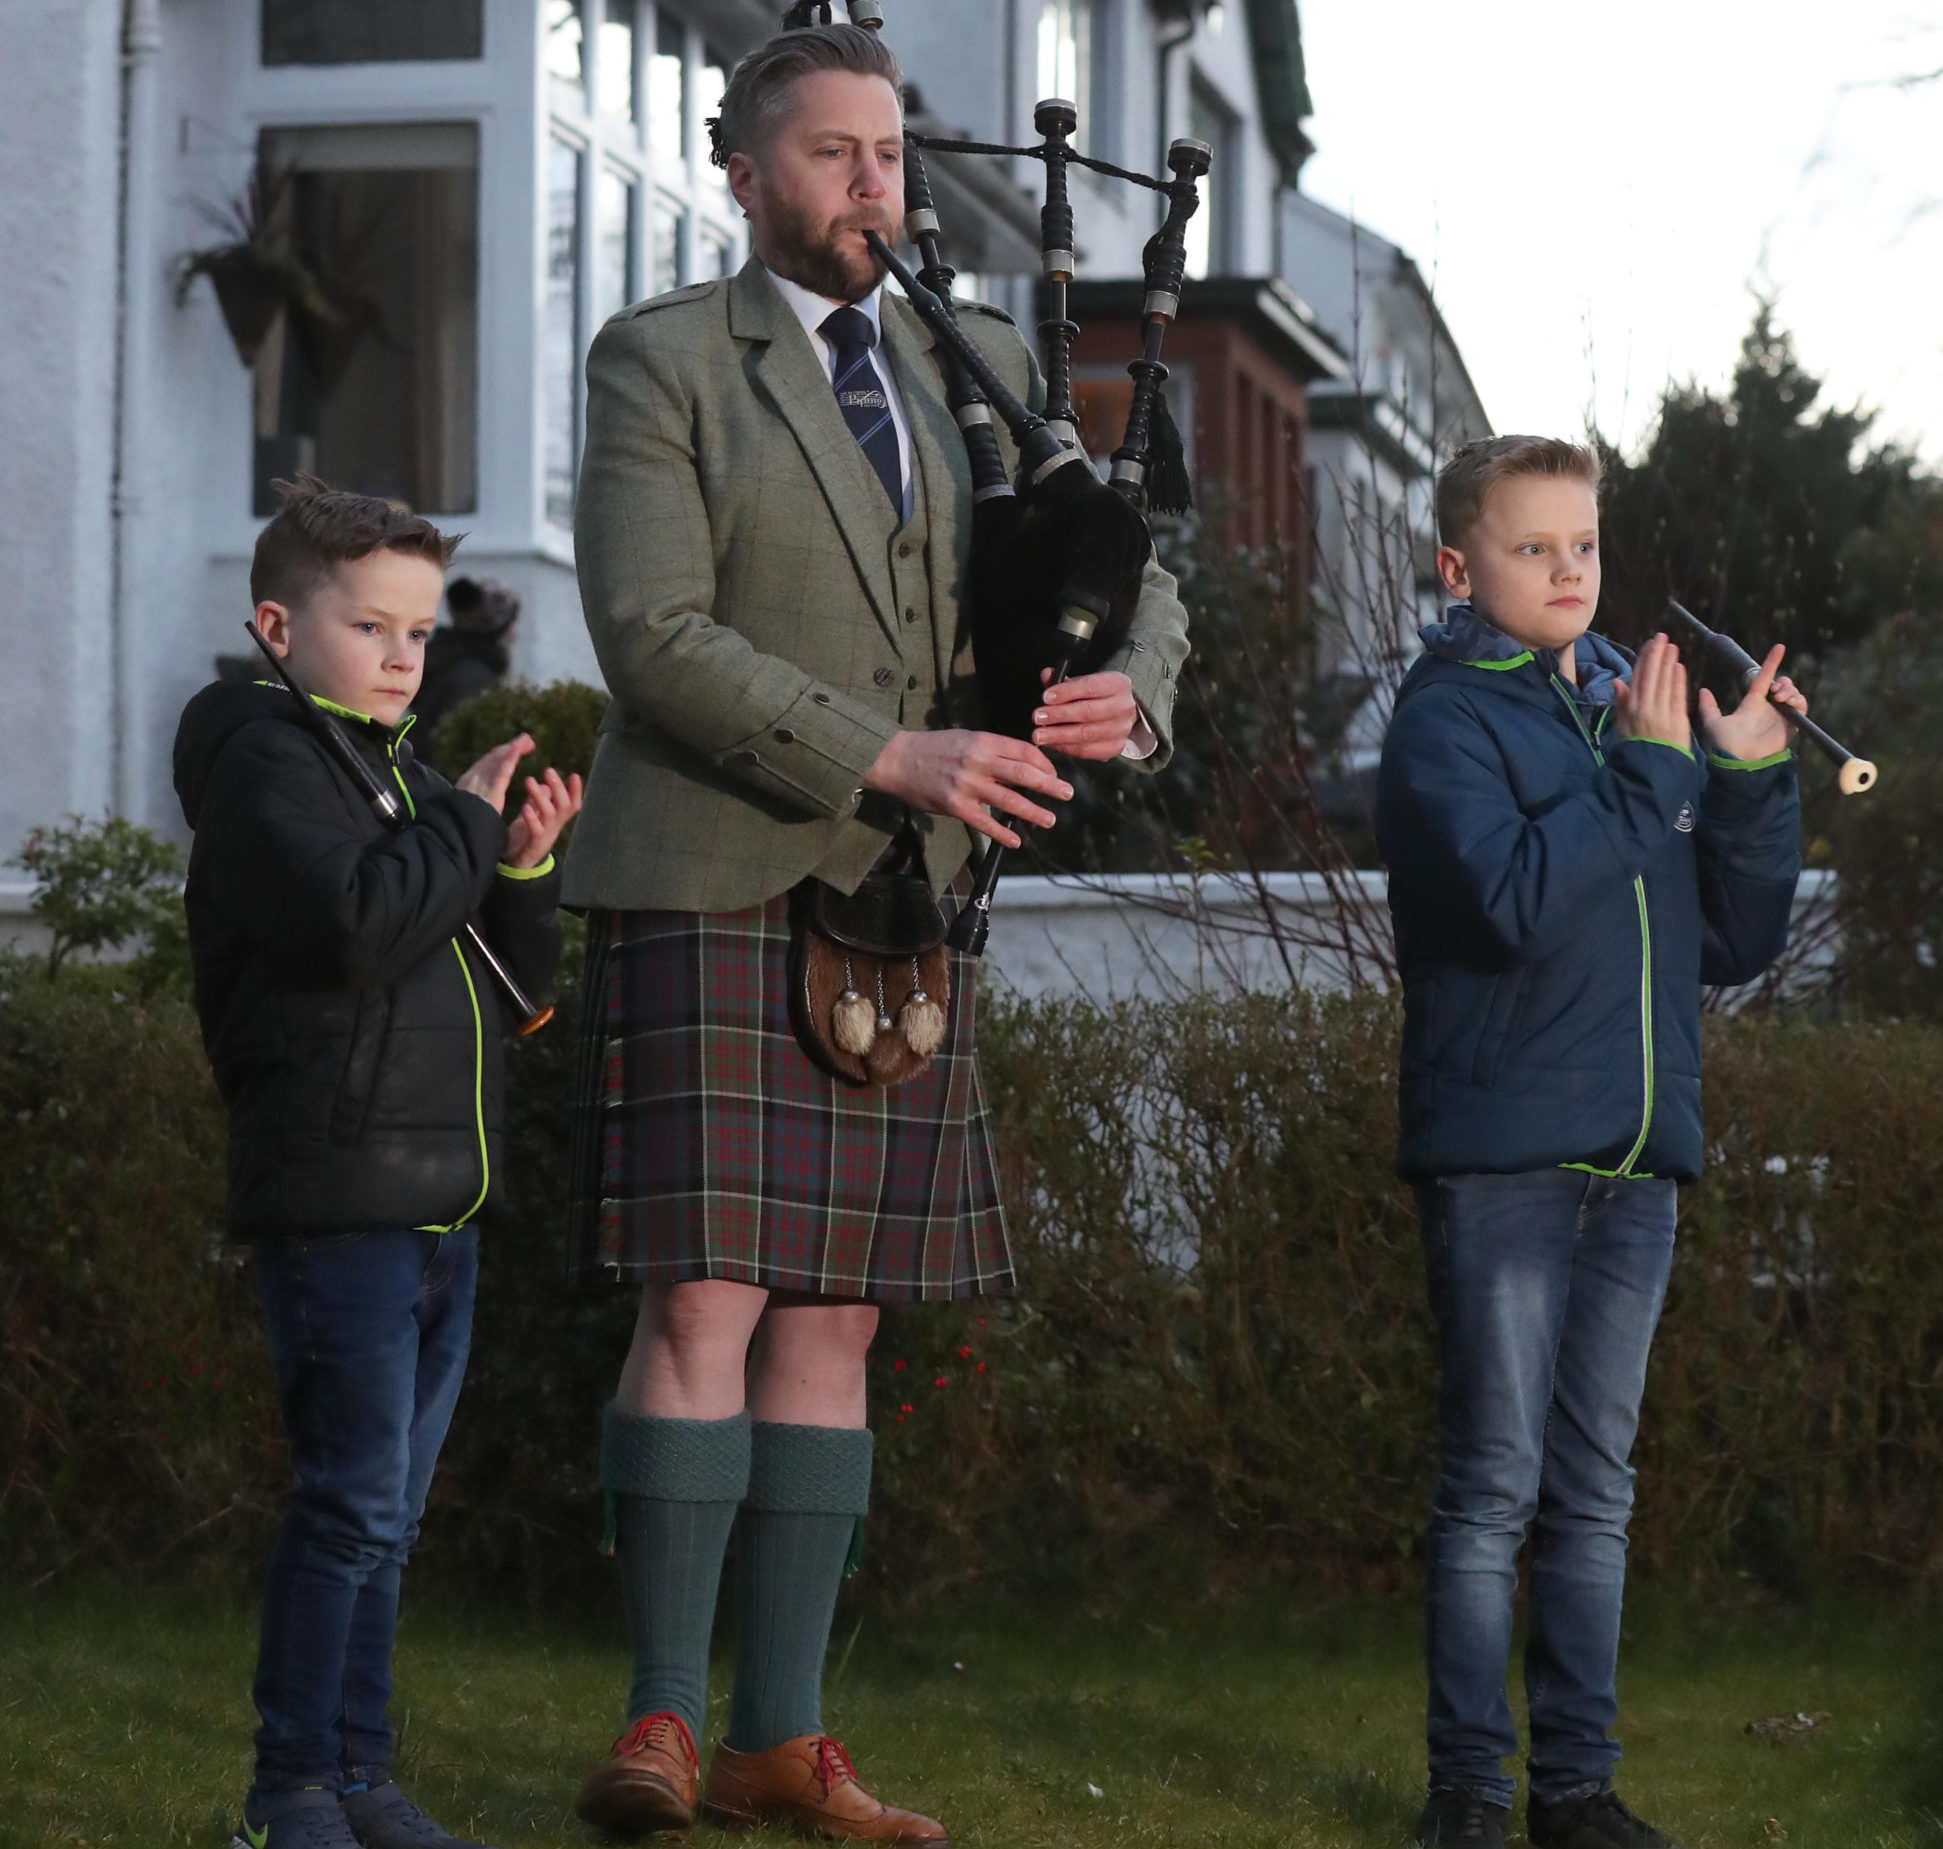 Finlay MacDonald plays the pipes at his home in Glasgow alongside sons Elliott, ten, and Fionn, eight to salute local heroes on Thursday